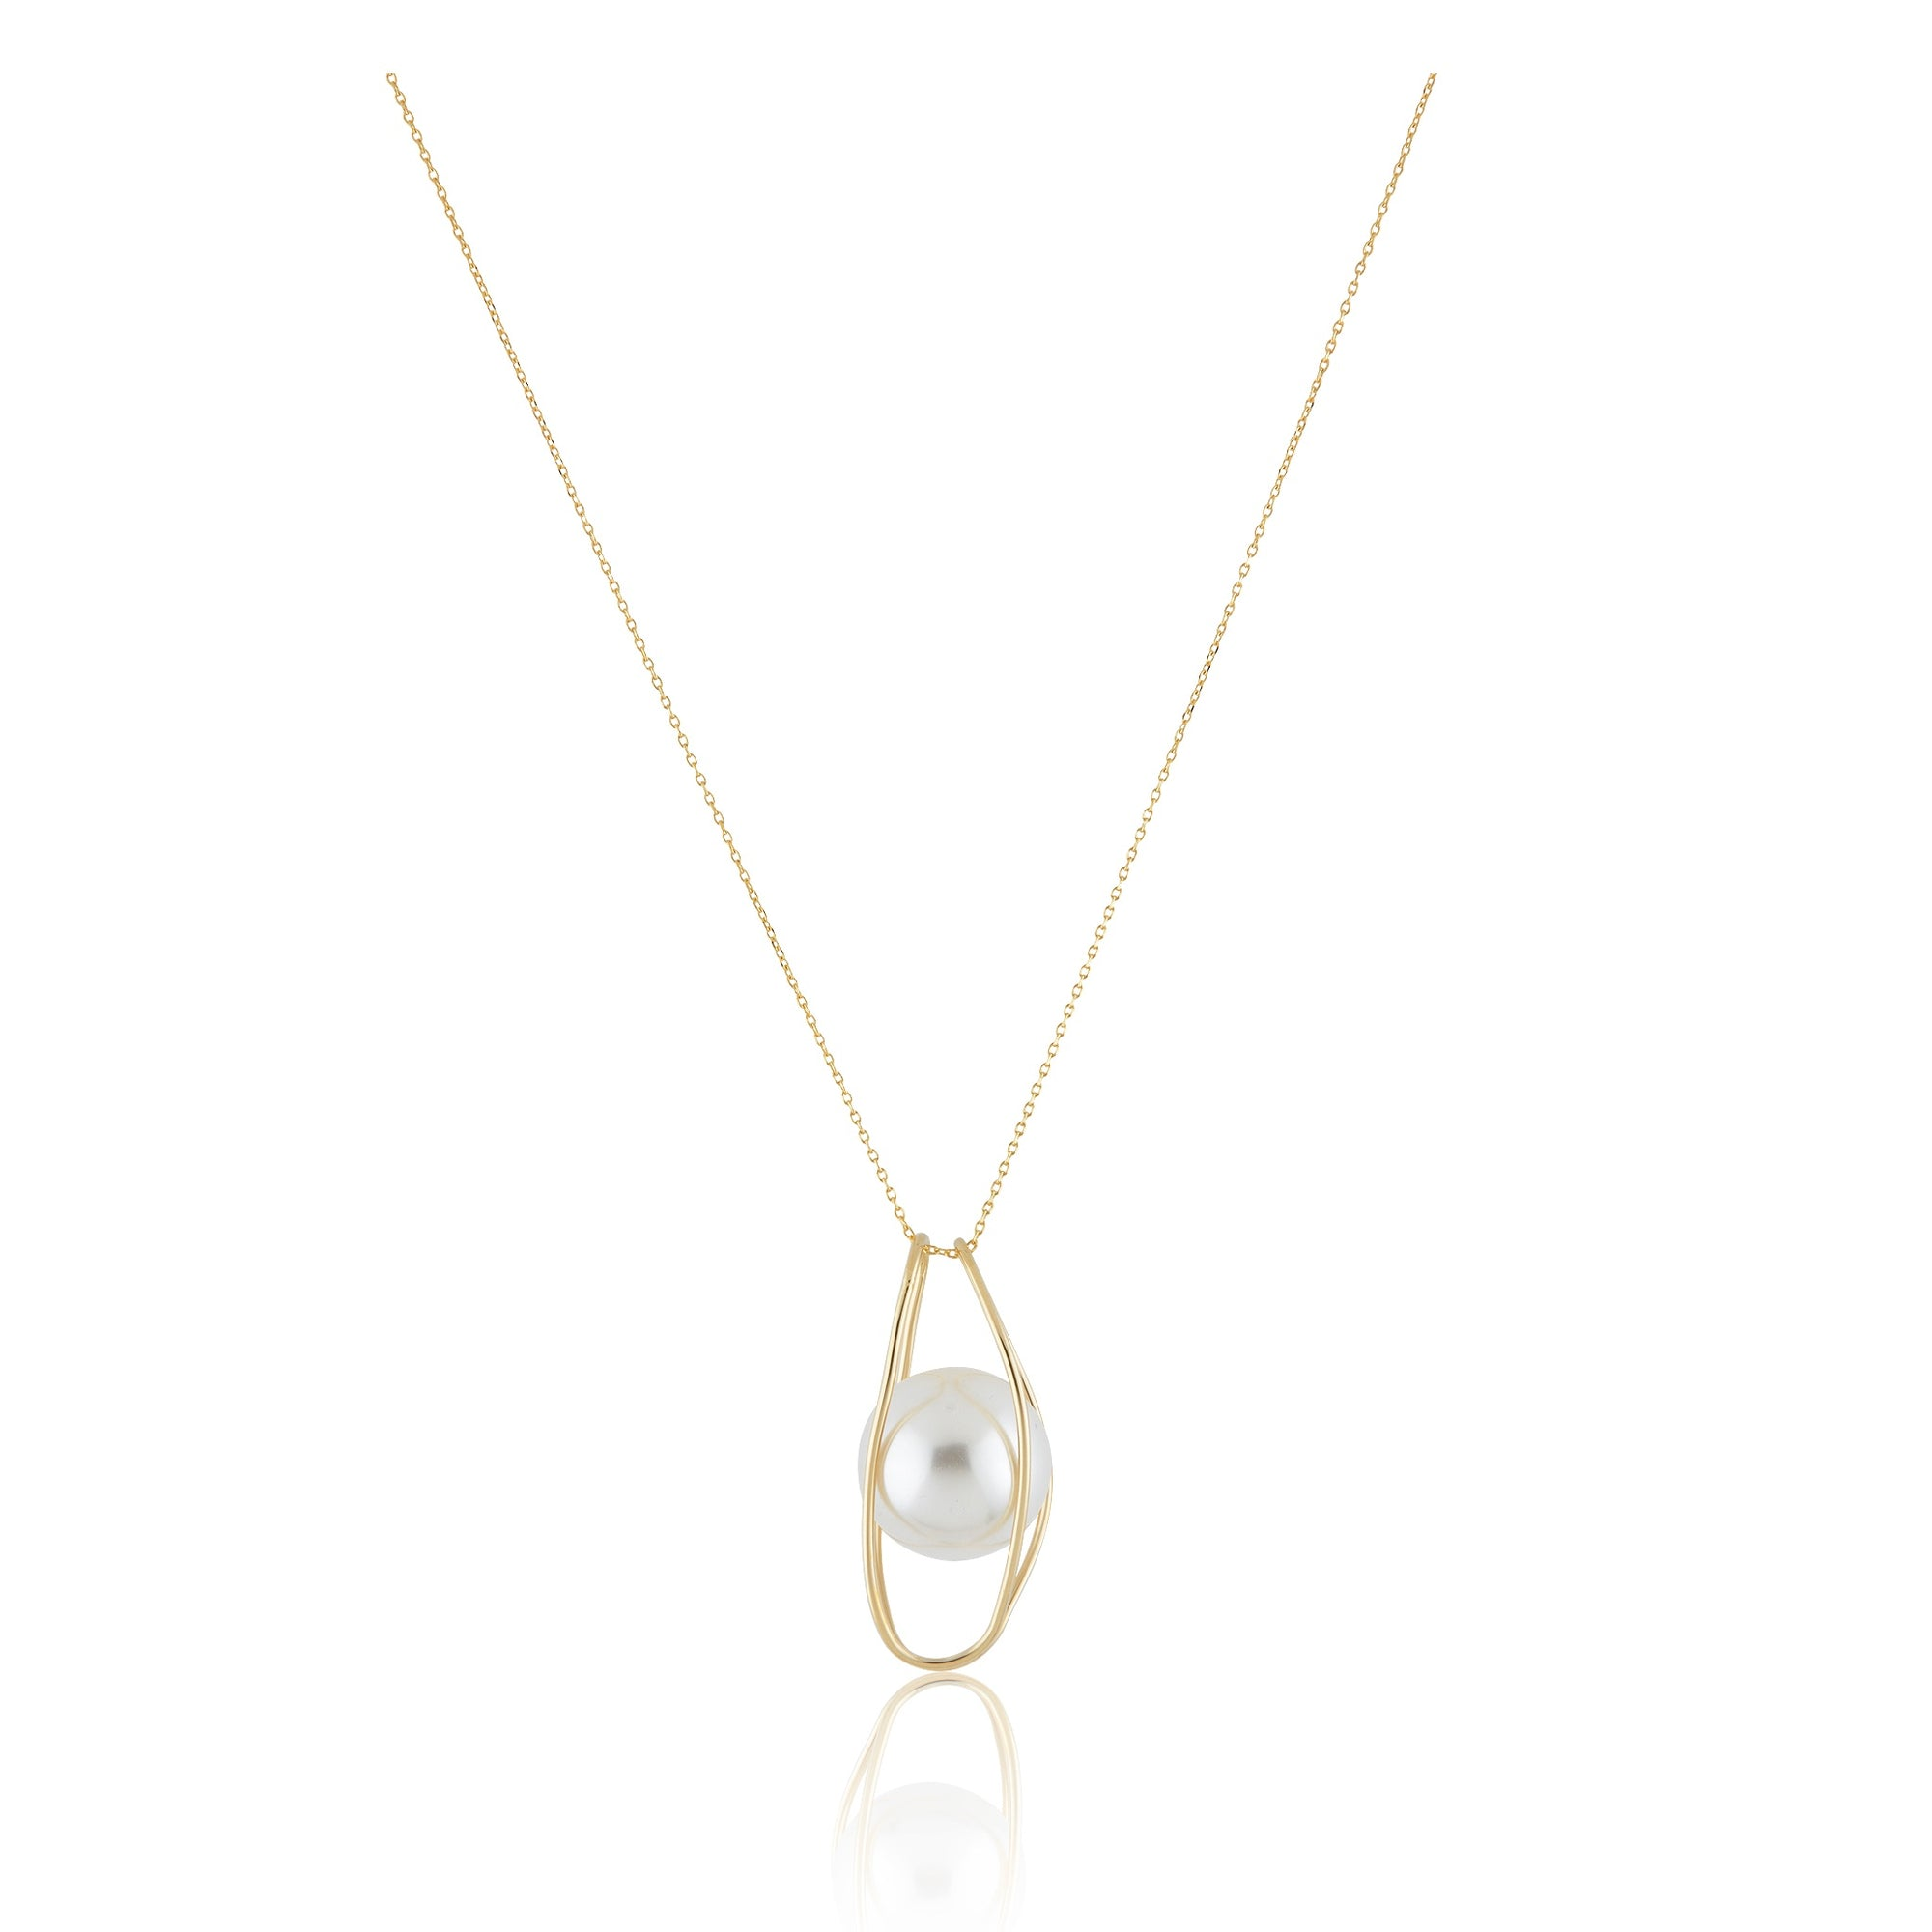 The Capsuled Pearl Necklace - Gold